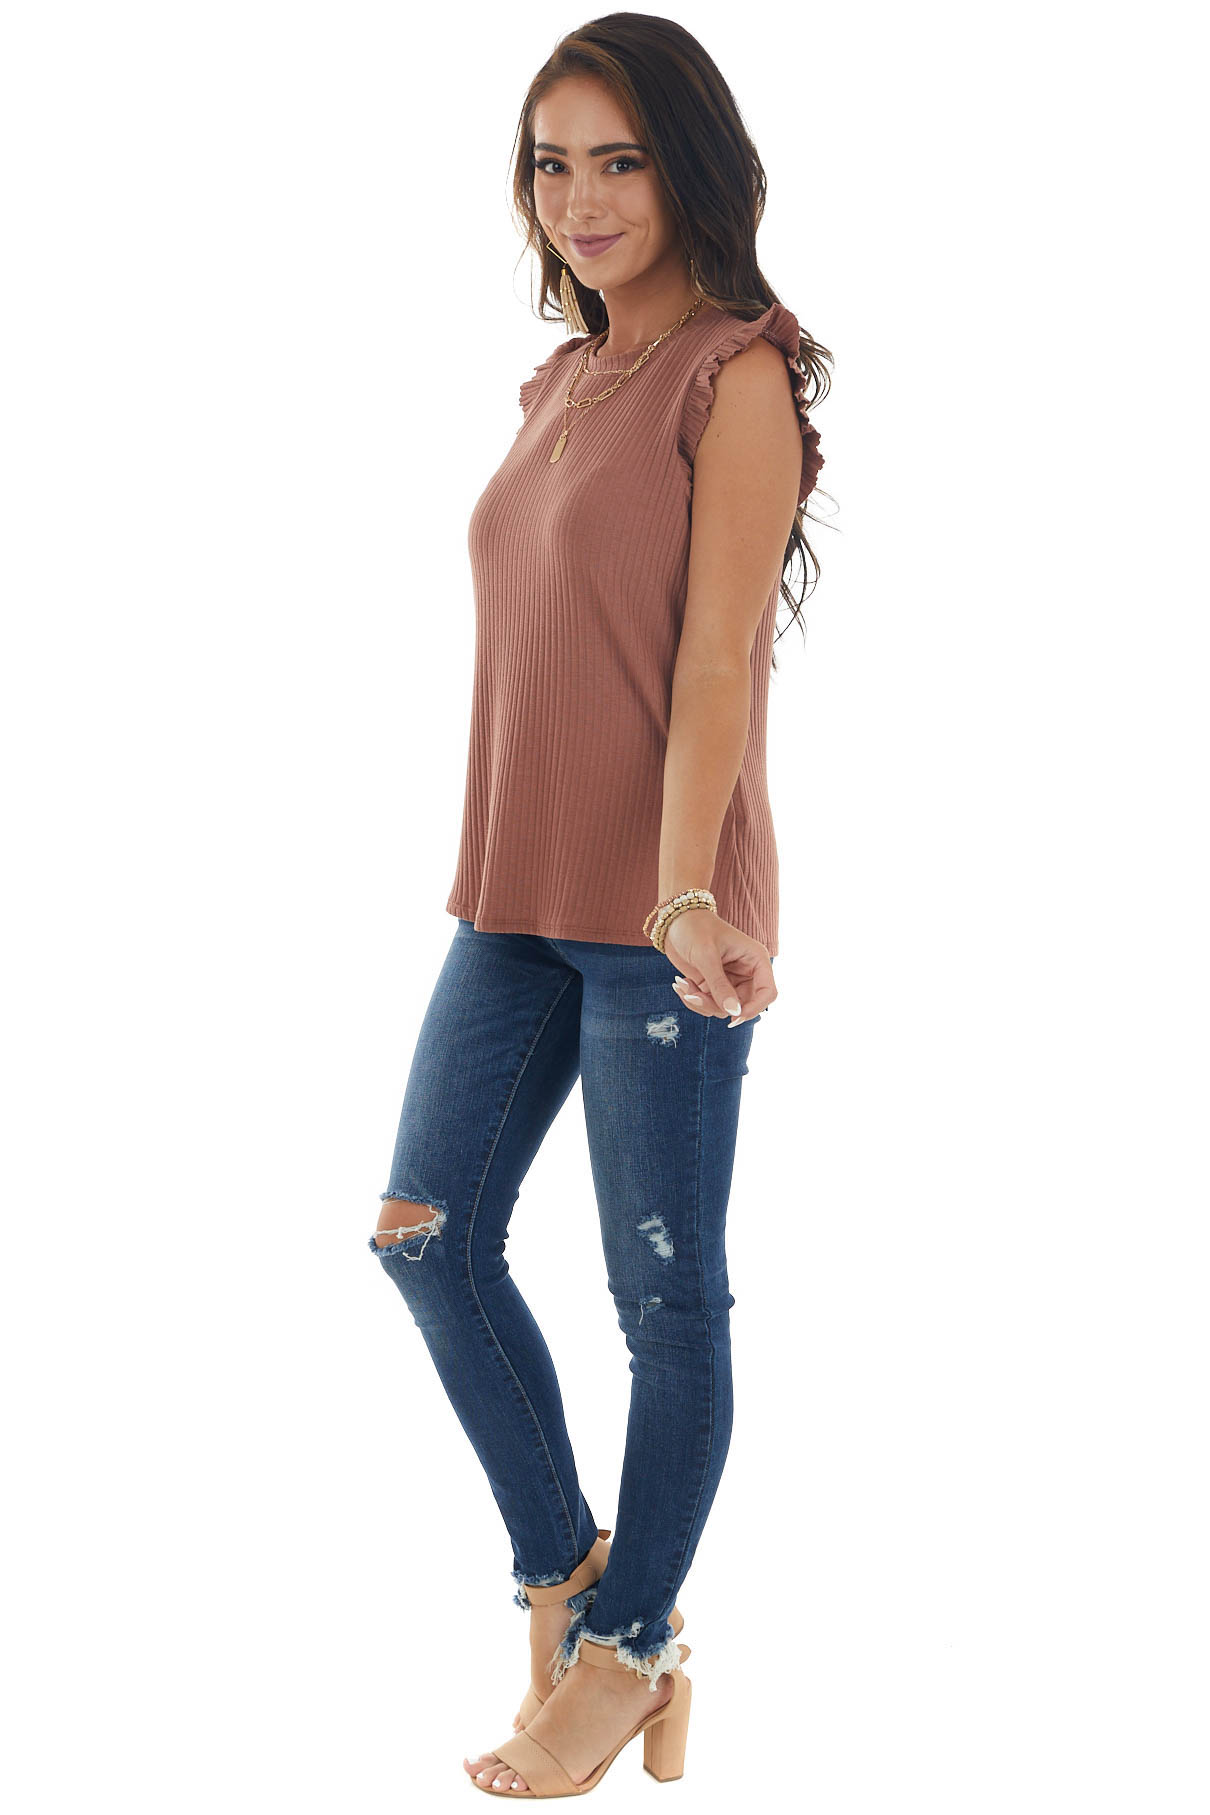 Chestnut Sleeveless Ribbed Top with Ruffles